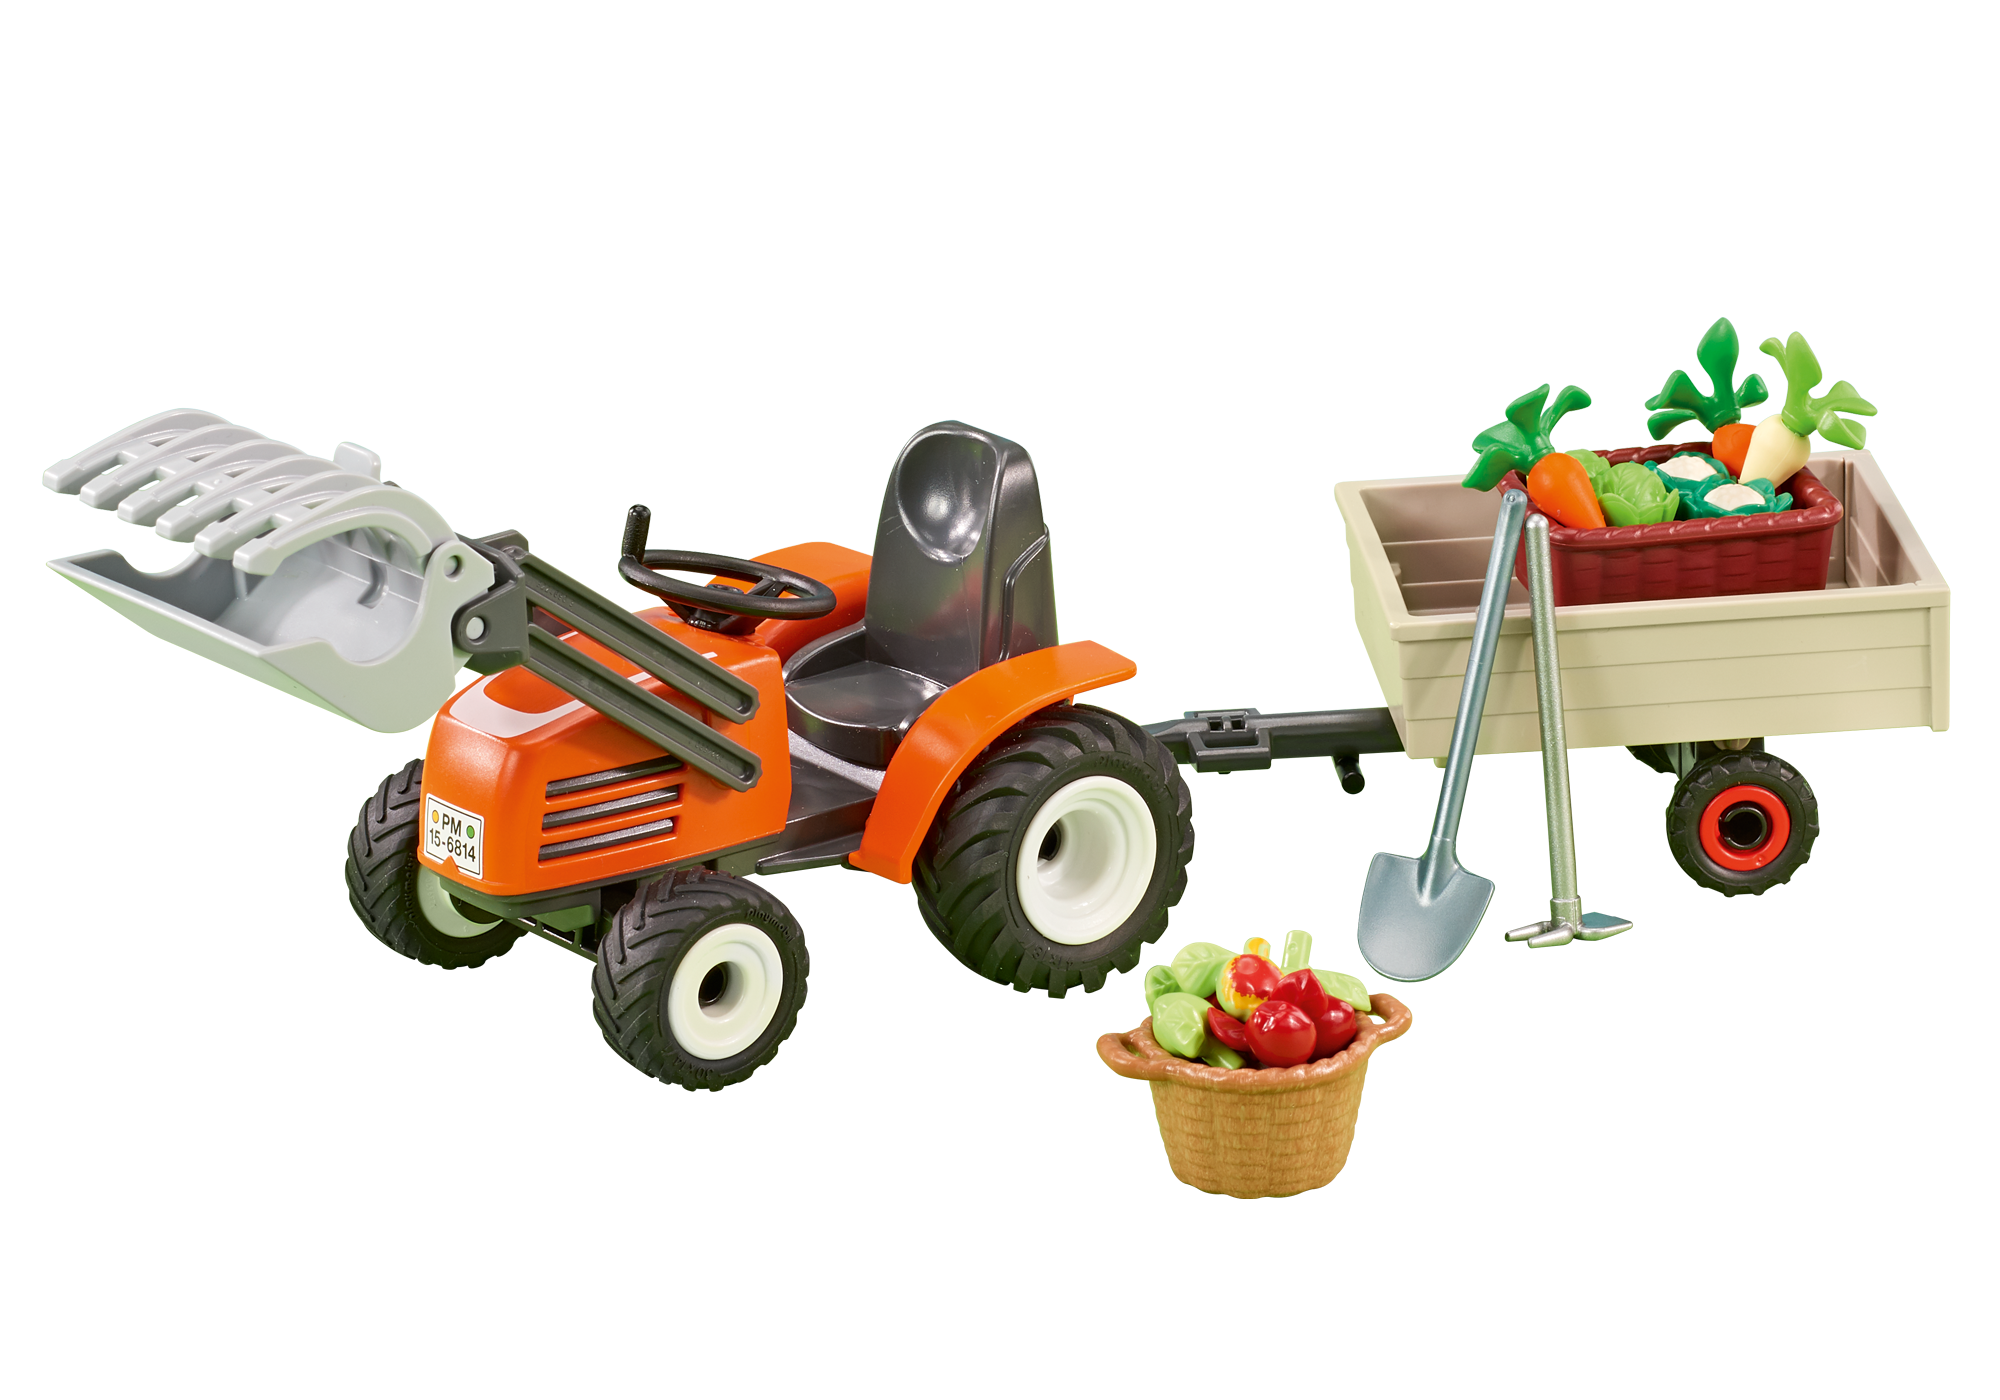 http://media.playmobil.com/i/playmobil/6537_product_detail/Compact Front Loader with Trailer